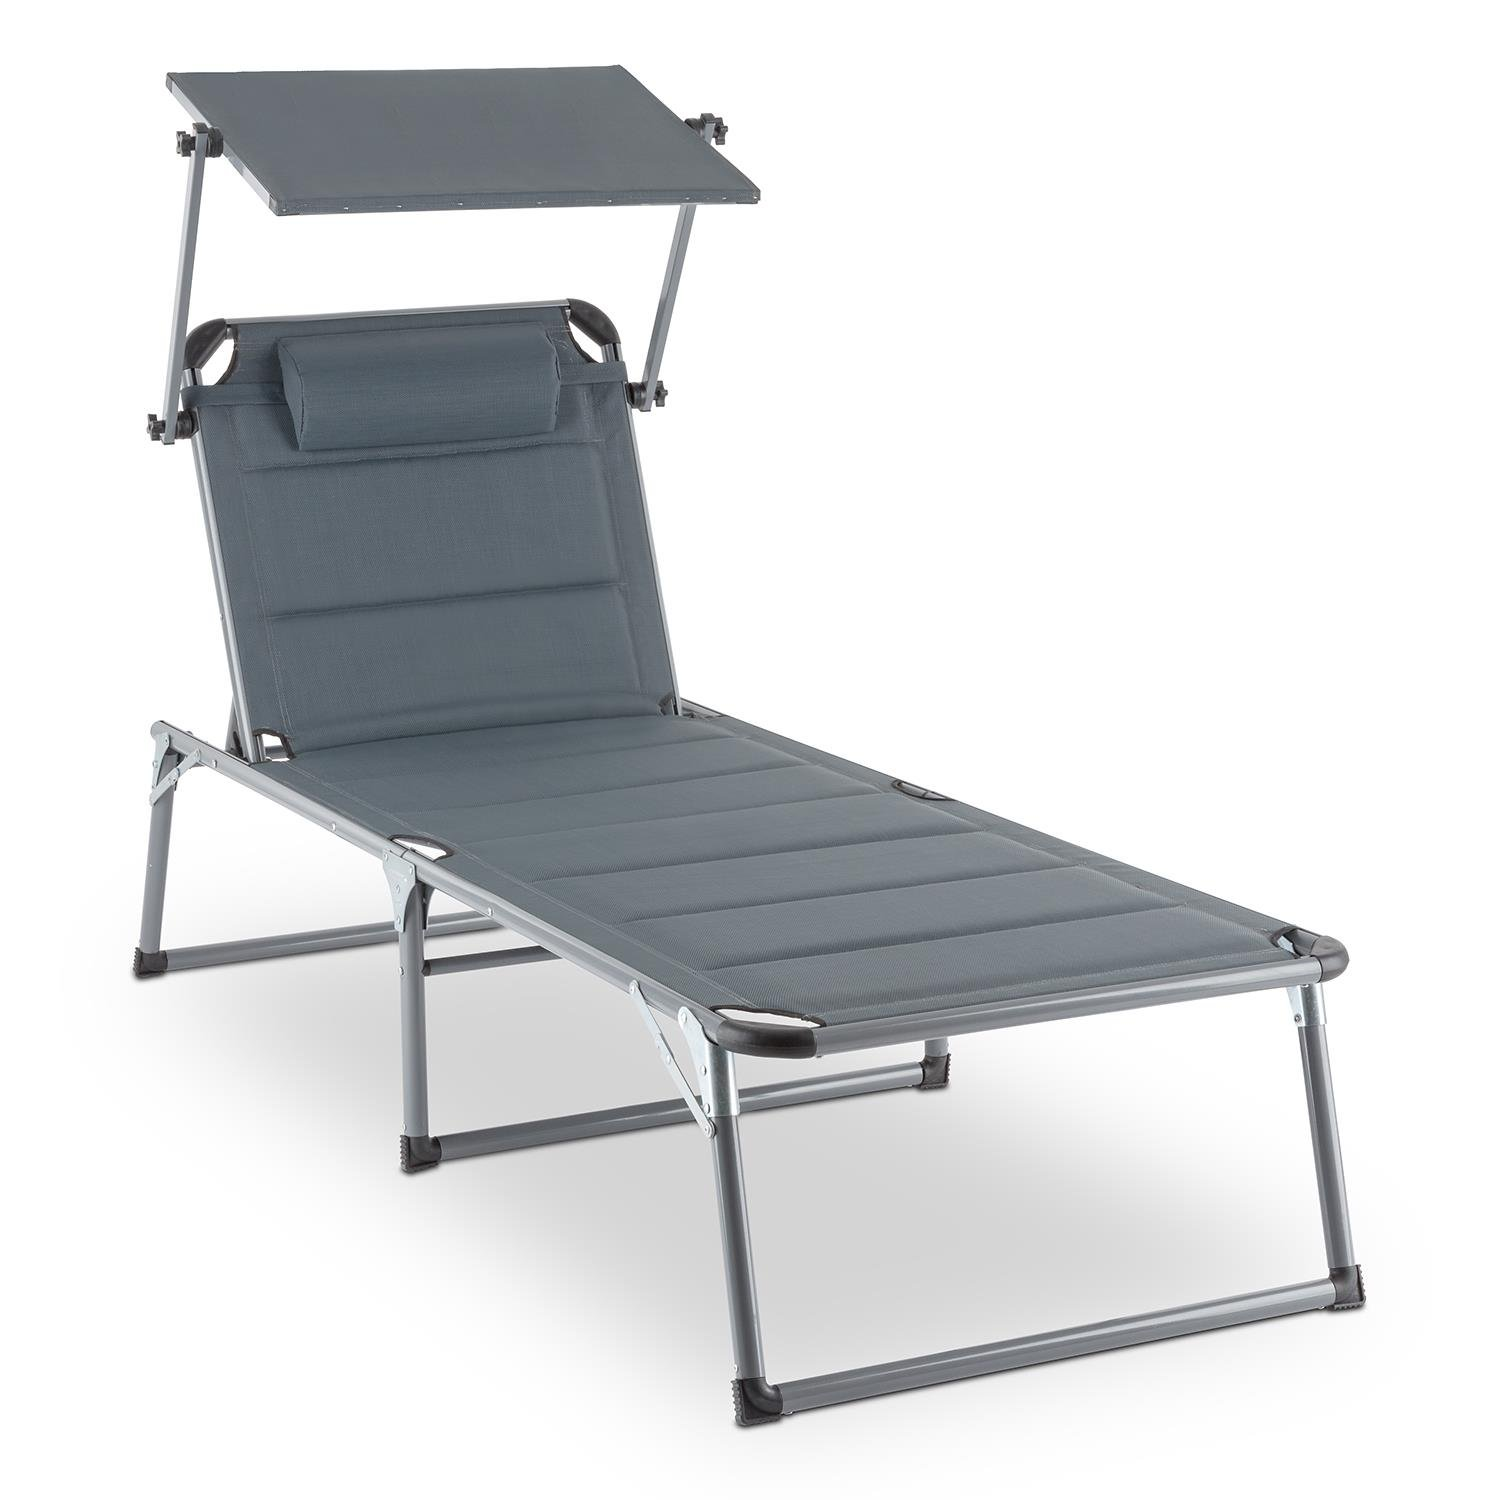 BLUMFELDT Amalfi • Outdoor Portable Folding Lounge Chair • 5 Reclining Positions • Sunshade • Adjustable Pillow • Resistant Polyester Cover • Noble Grey by Blumfeldt